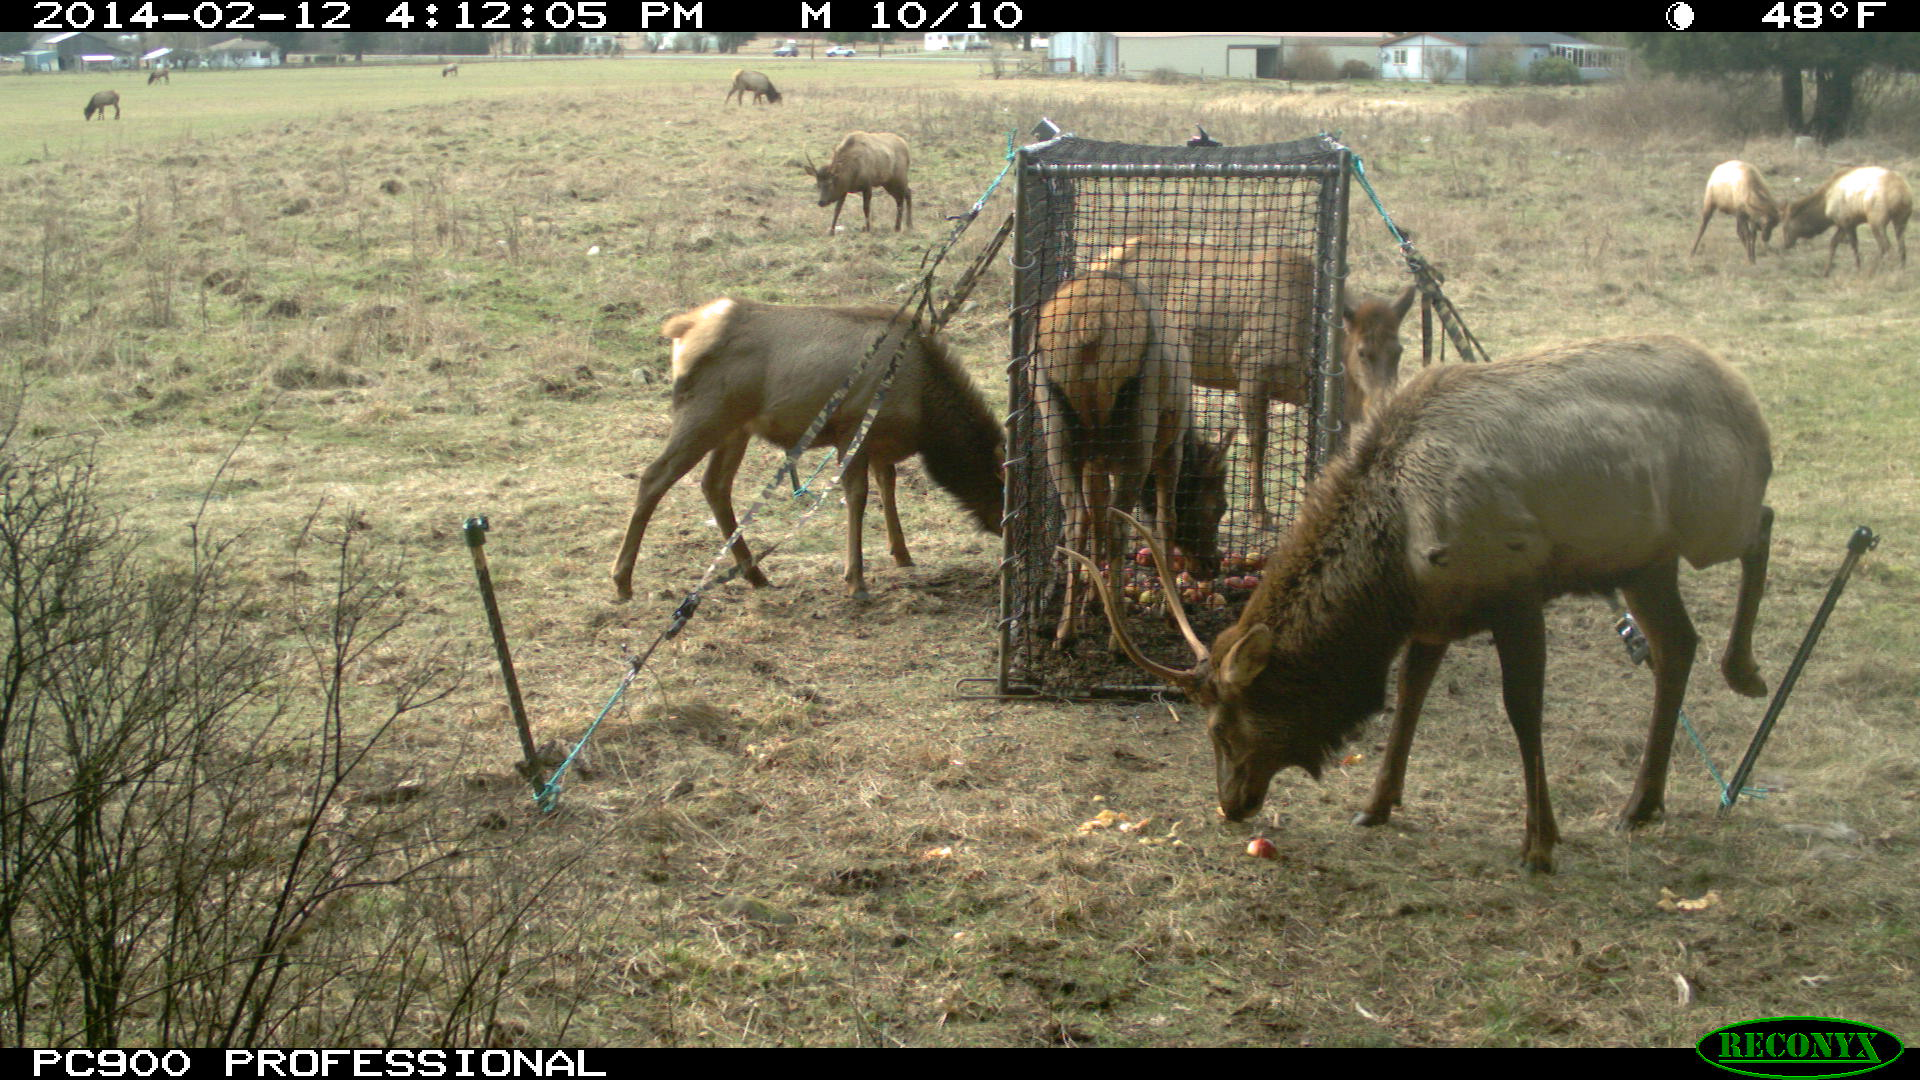 Tulalip Tribes Natural Resources Department news link to Treaty Tribes Speak Up Against Politics in Elk Management with image of elk at feeder